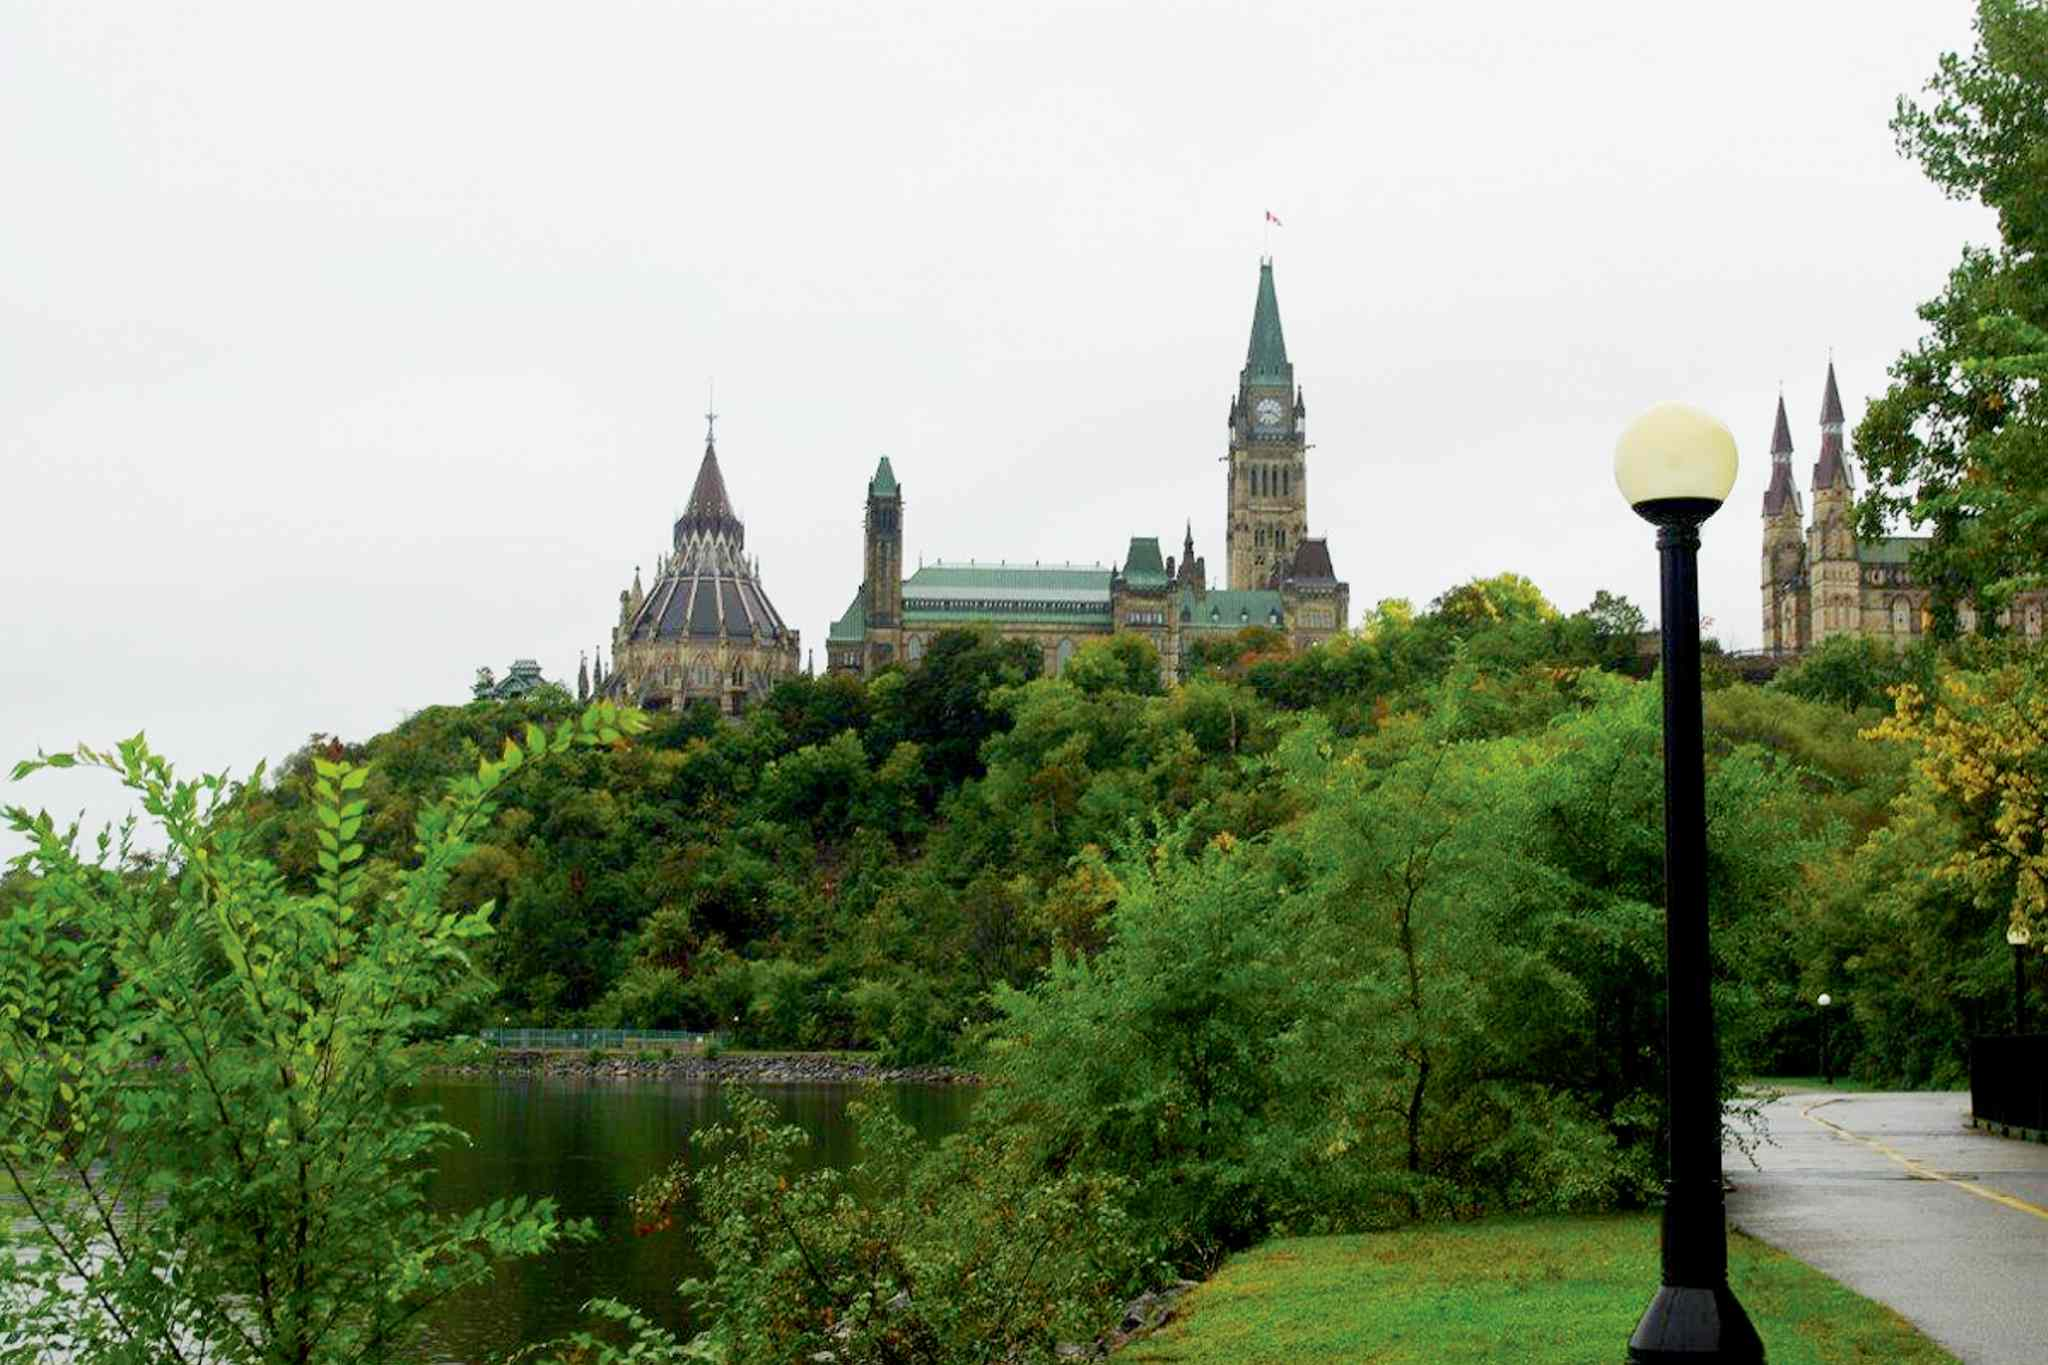 There's plenty to see and do in Ottawa. Try the 90-minute Original Haunted Walk of Ottawa, which features scary stories about the Bytown Museum and other locations.